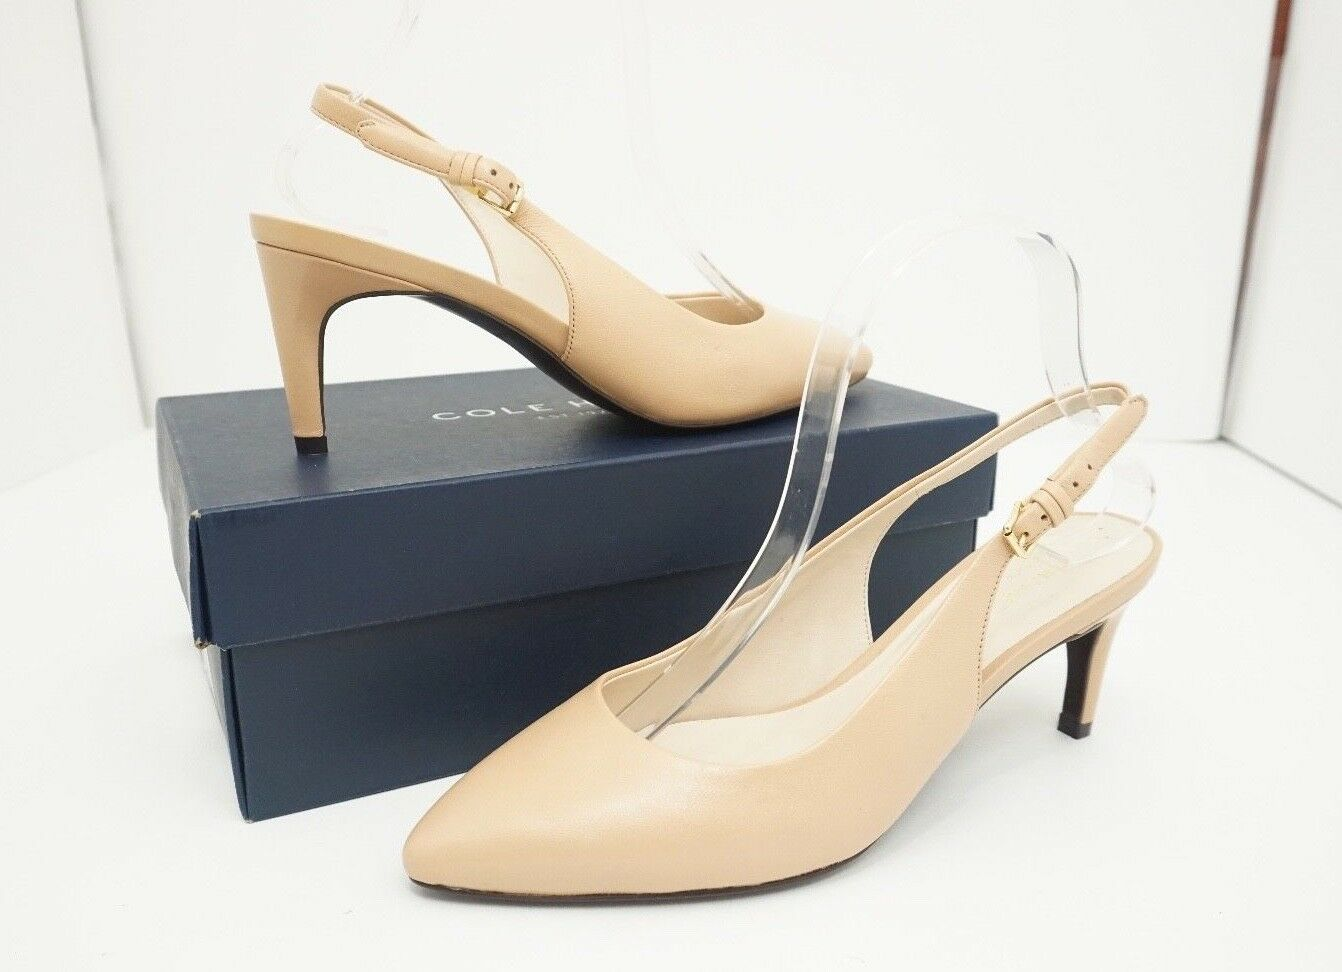 Cole Haan Haan Haan Medora Women's High Heels Pumps Sling Nude Leather Size US 7.5 M b341e4